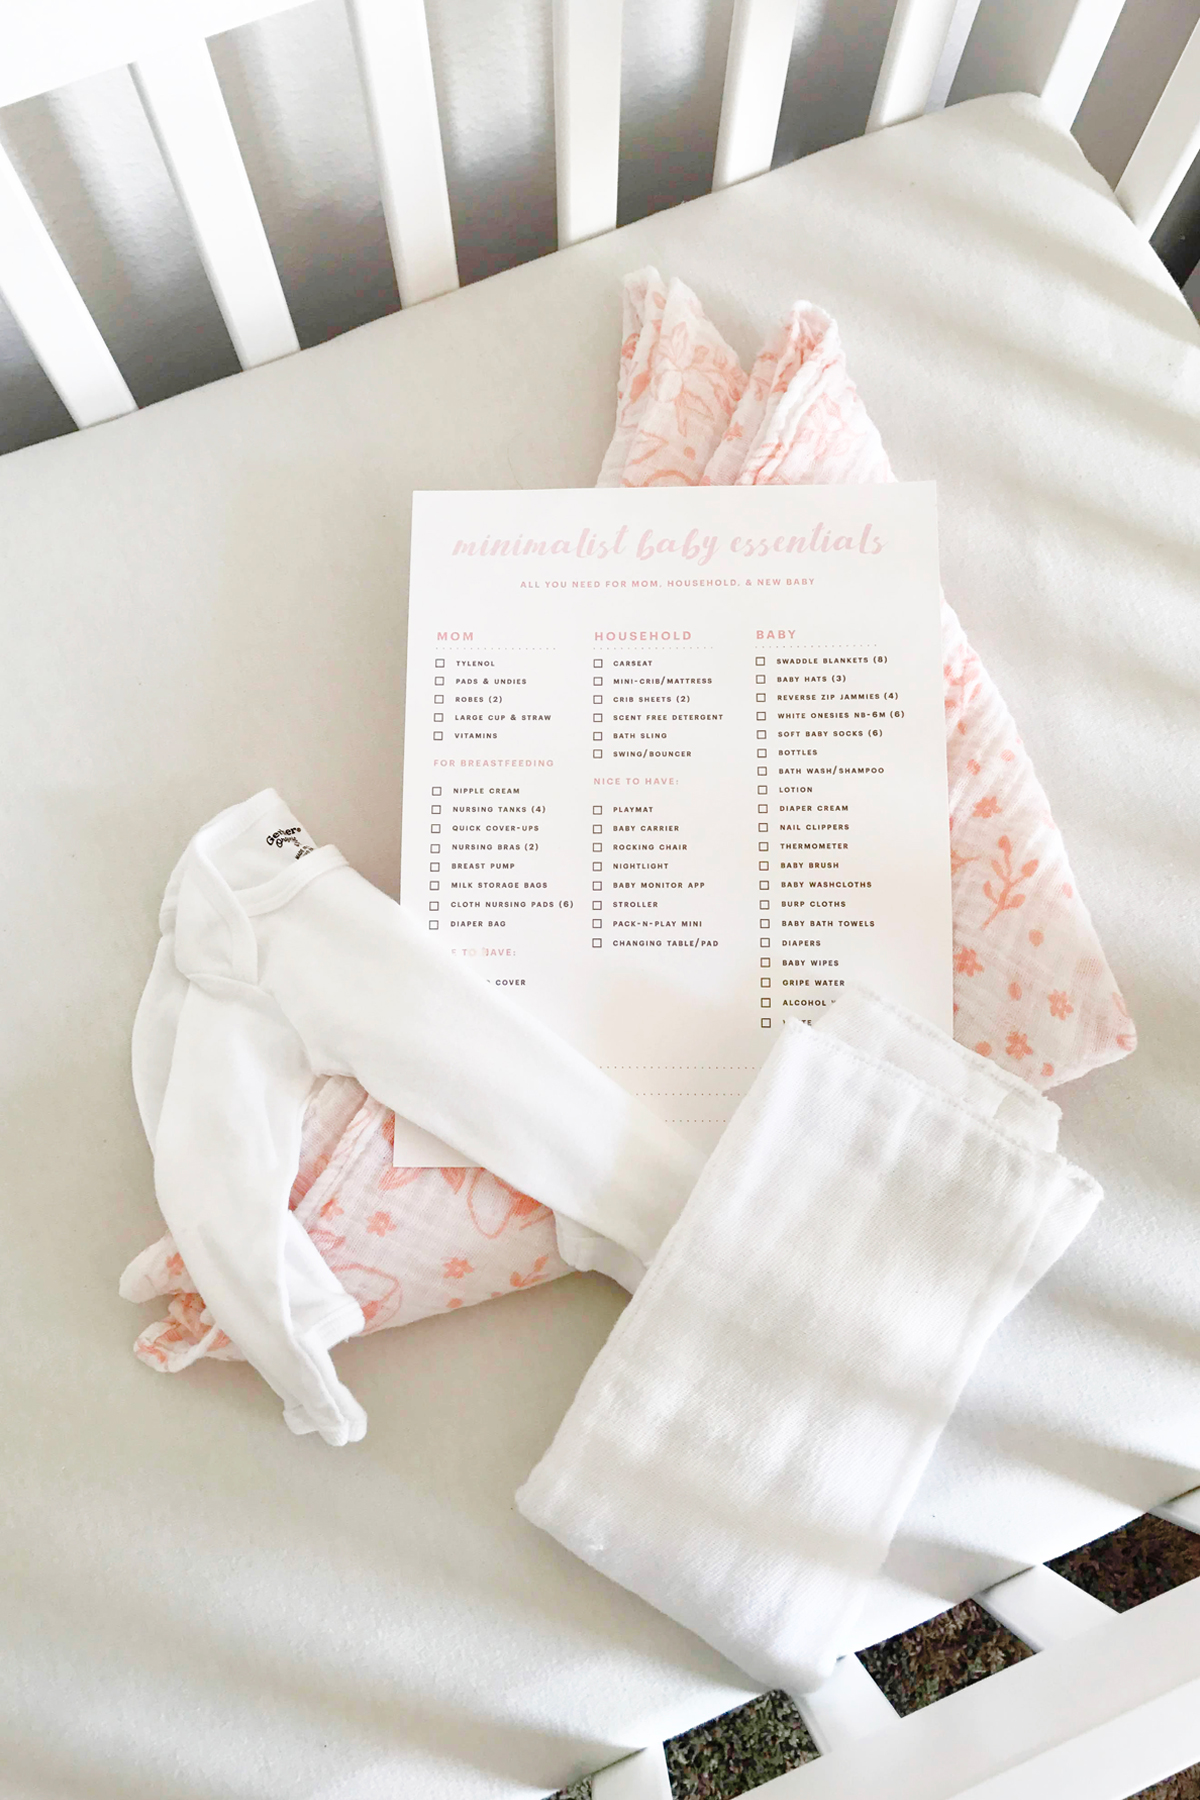 photo relating to Beanie Baby Checklist Printable known as Cost-free printable: Minimalist Boy or girl Basic principles List Hence